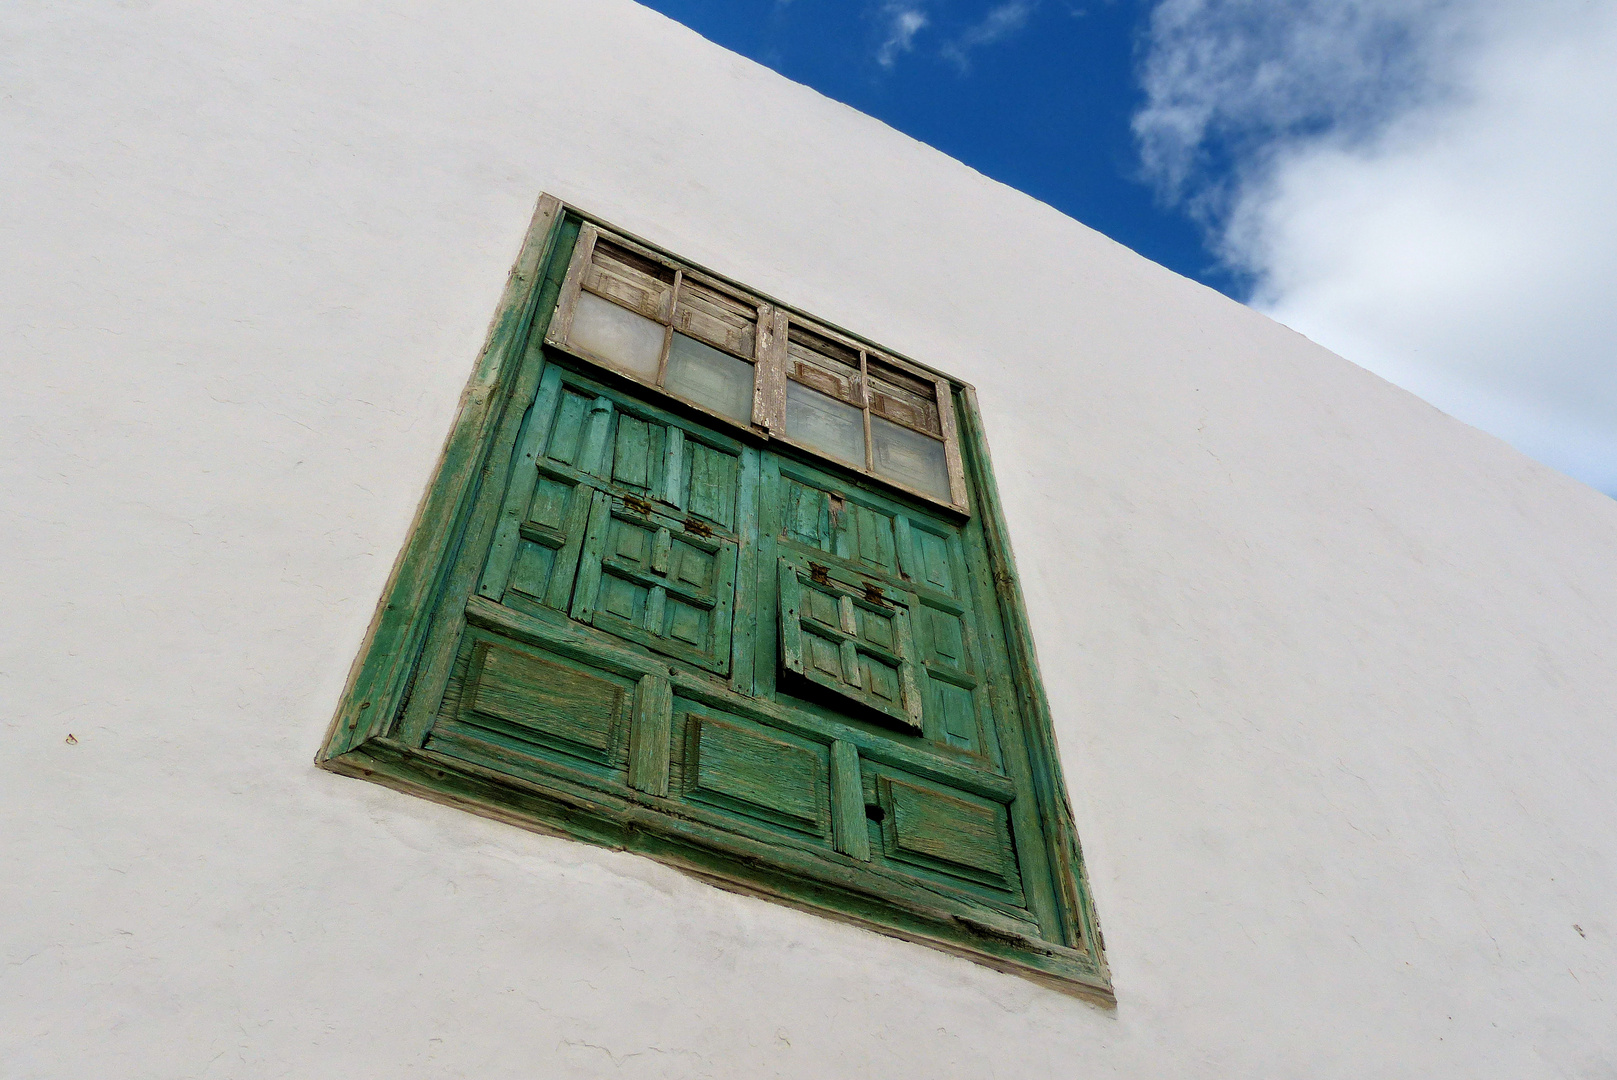 Typical white houses with green windows and doors in Teguise of Lanzarote